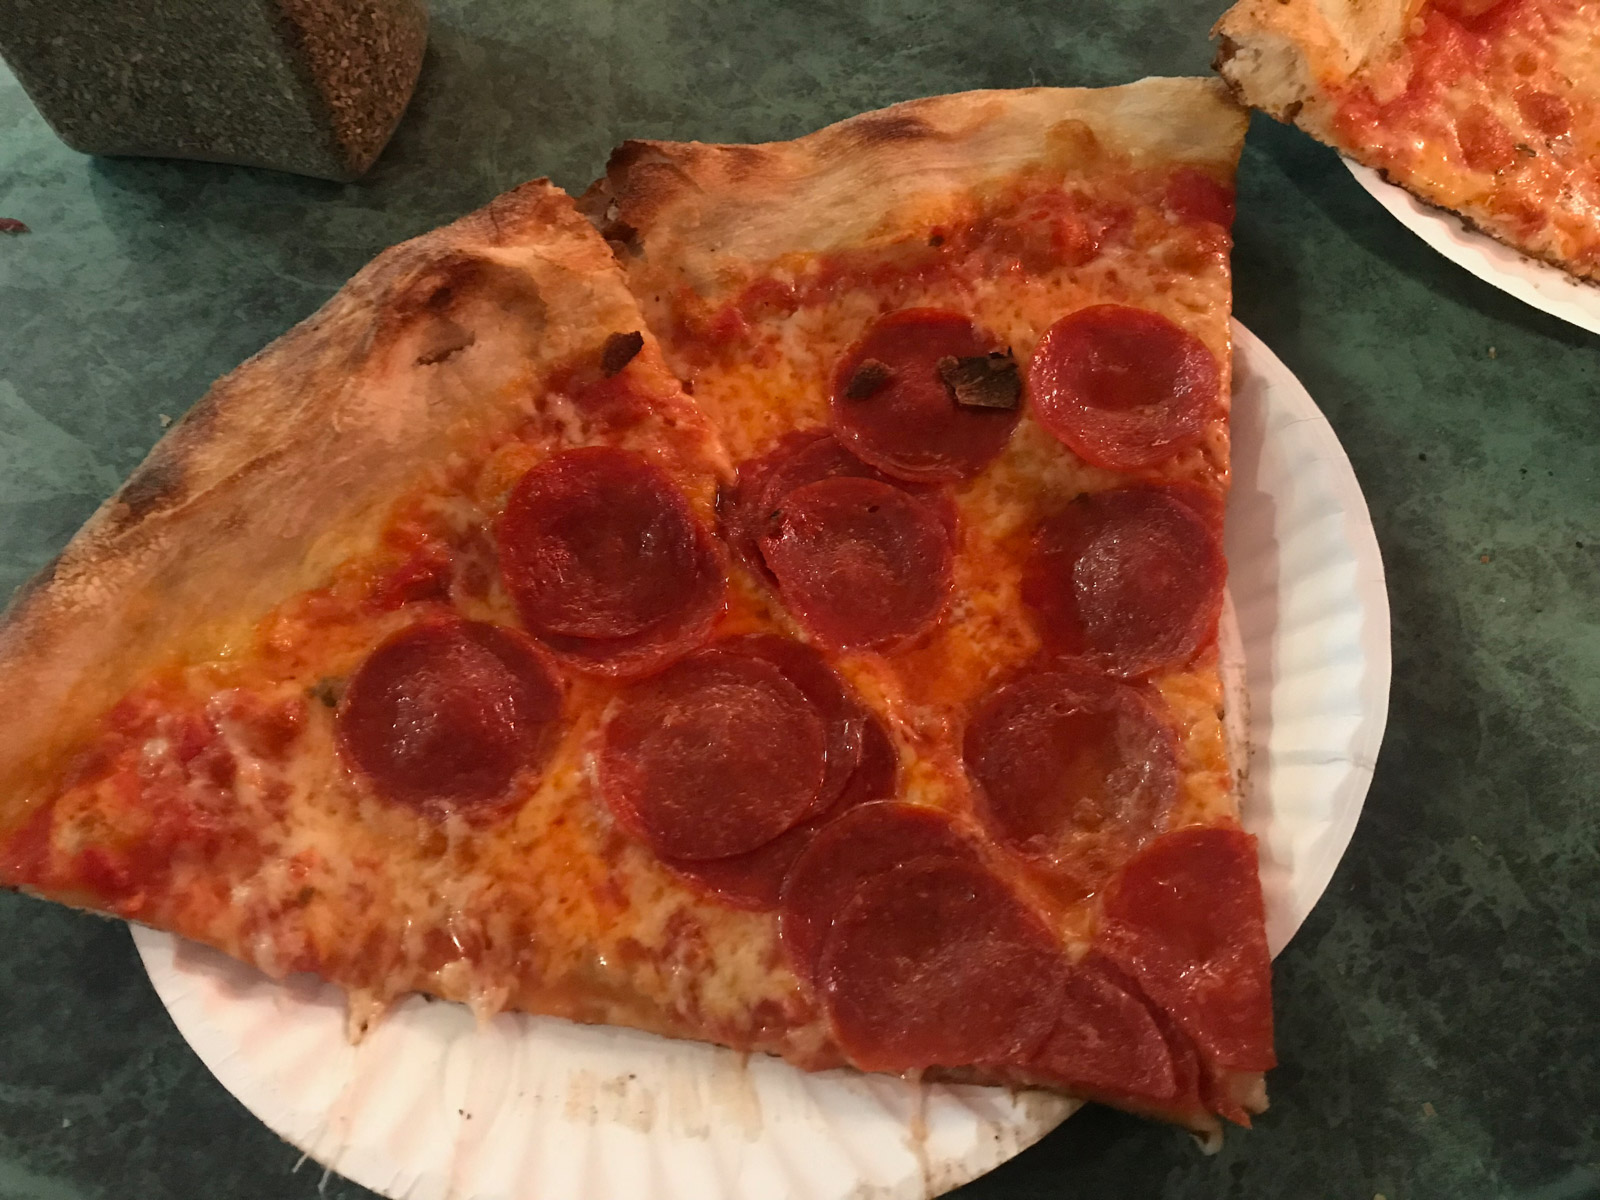 A few slices of pepperoni pizza on a white paper plate